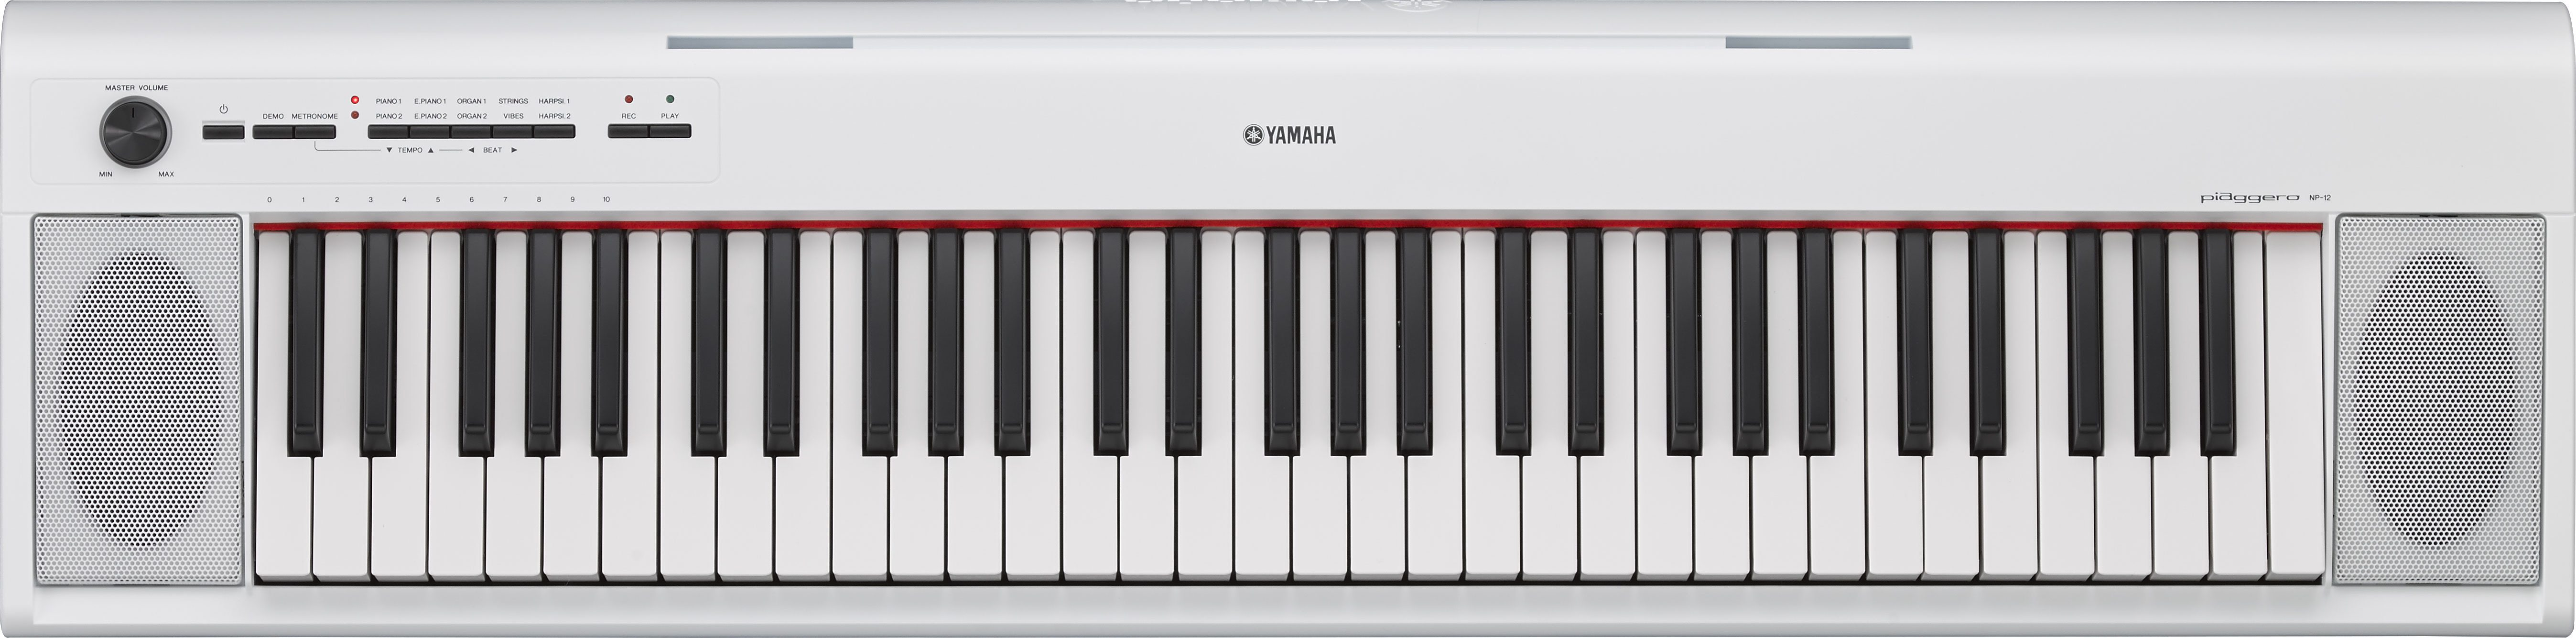 Yamaha Digital Keyboard, »Piaggero NP-12WH«